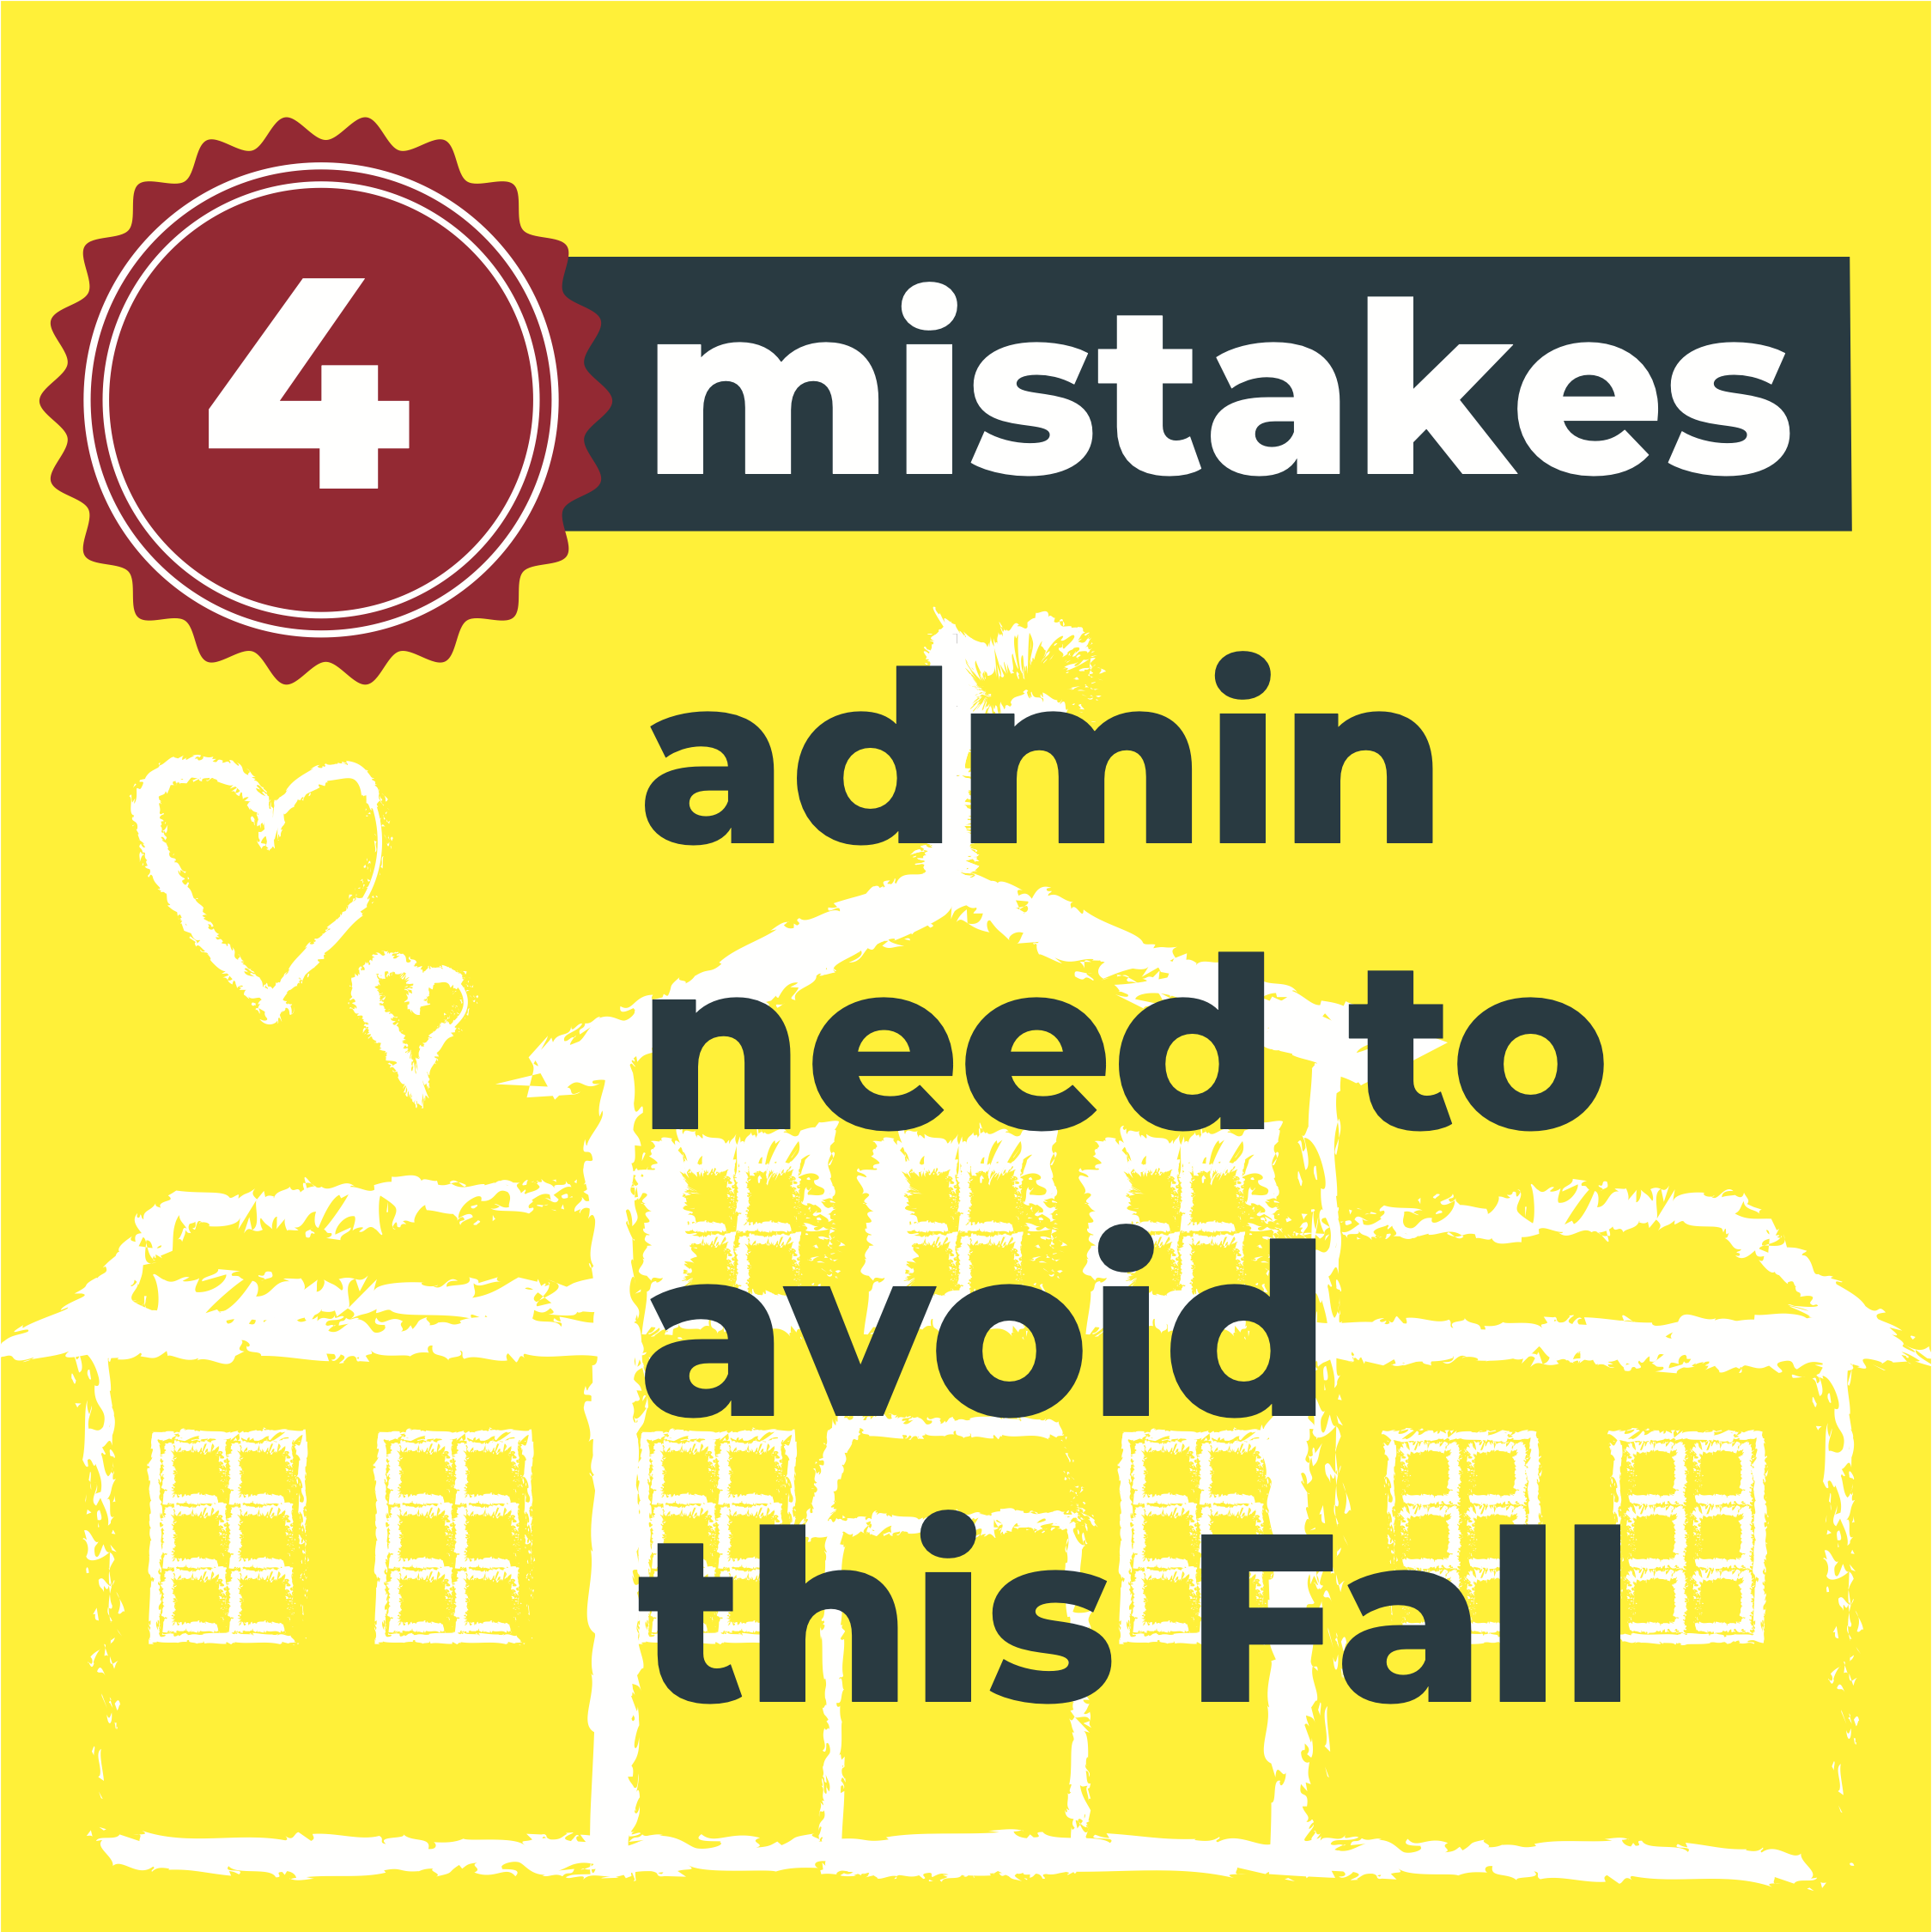 4 mistakes admin need to avoid this fall